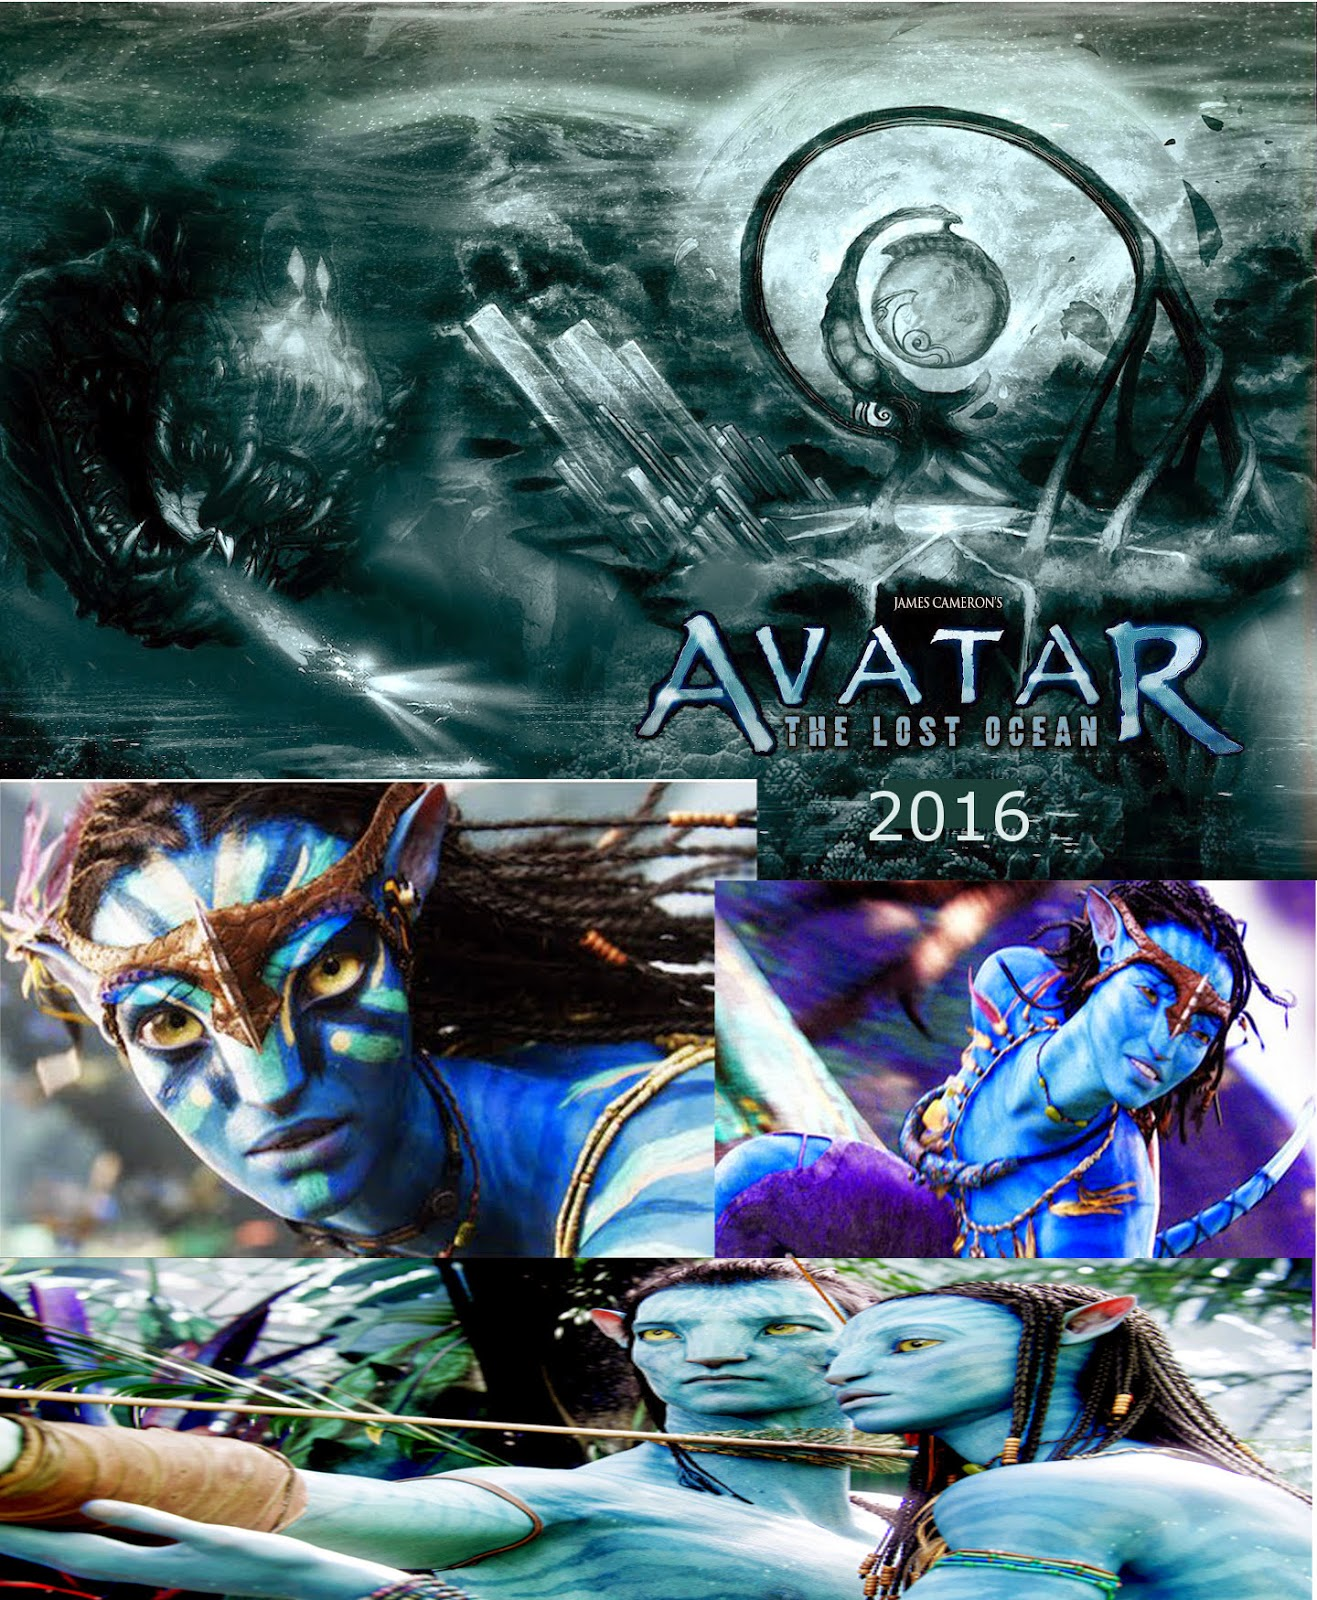 Avatar 2 Movie Trailer: HollywooD UpcominG MovieS: July 2014